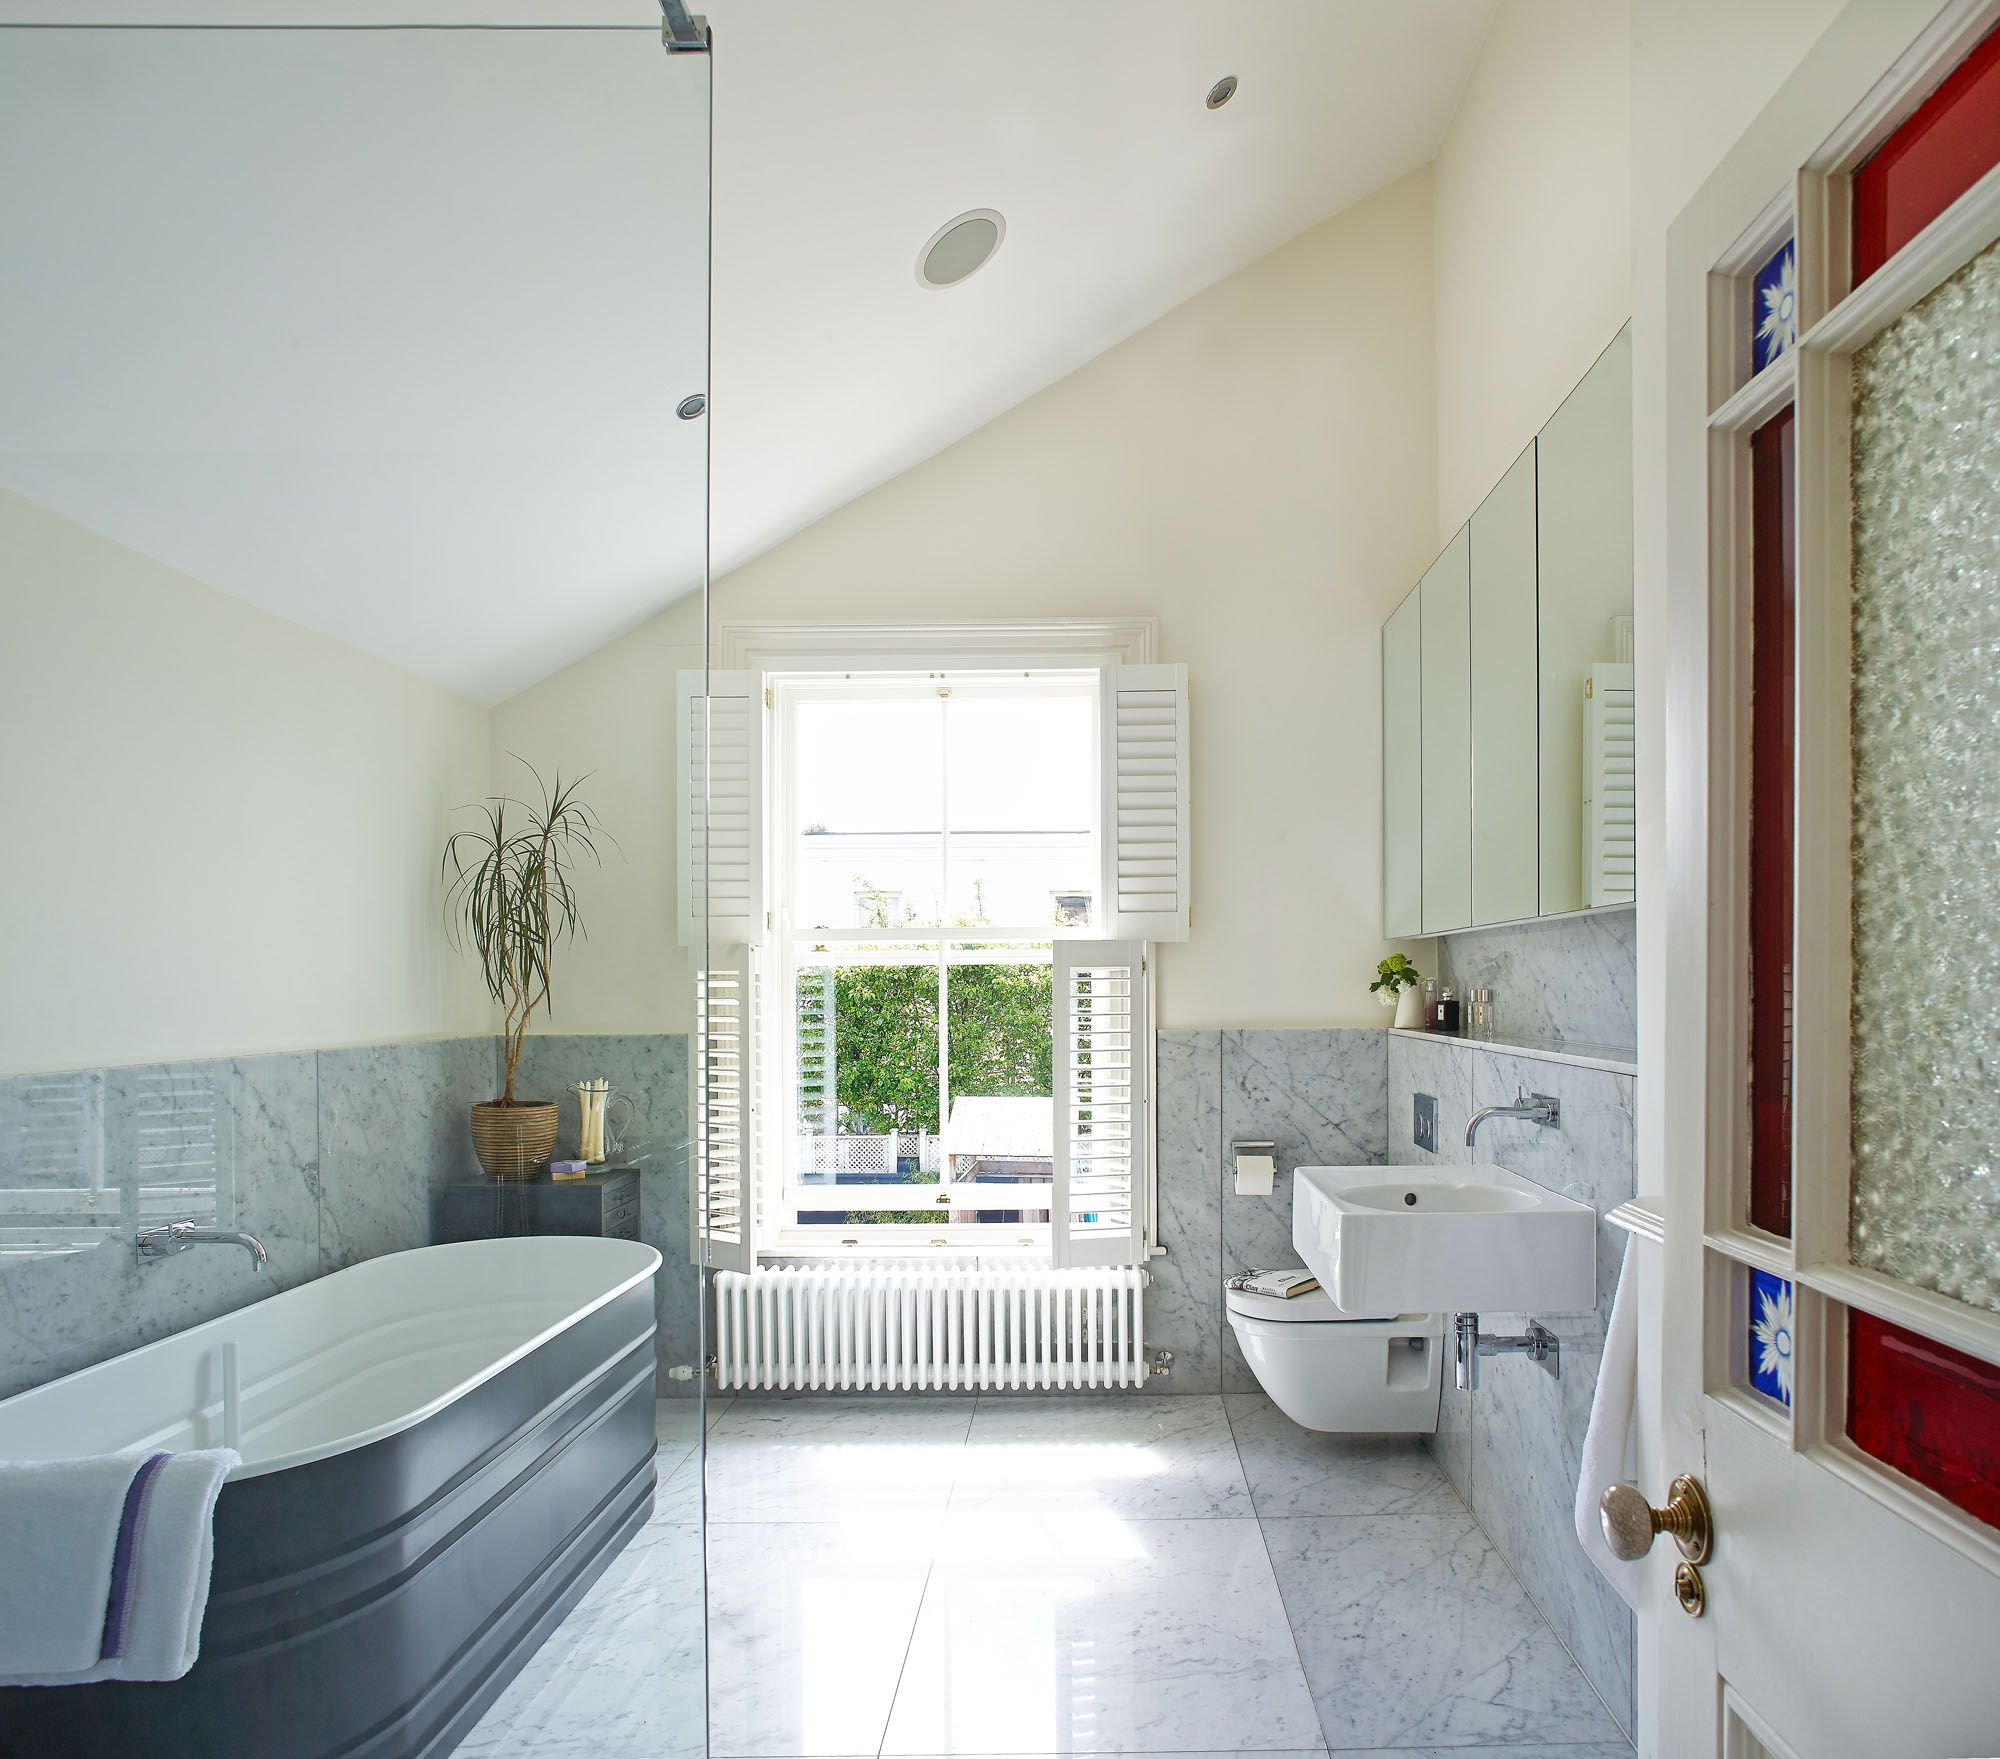 Main bathroom | Bathroom | Pinterest | House extensions ...